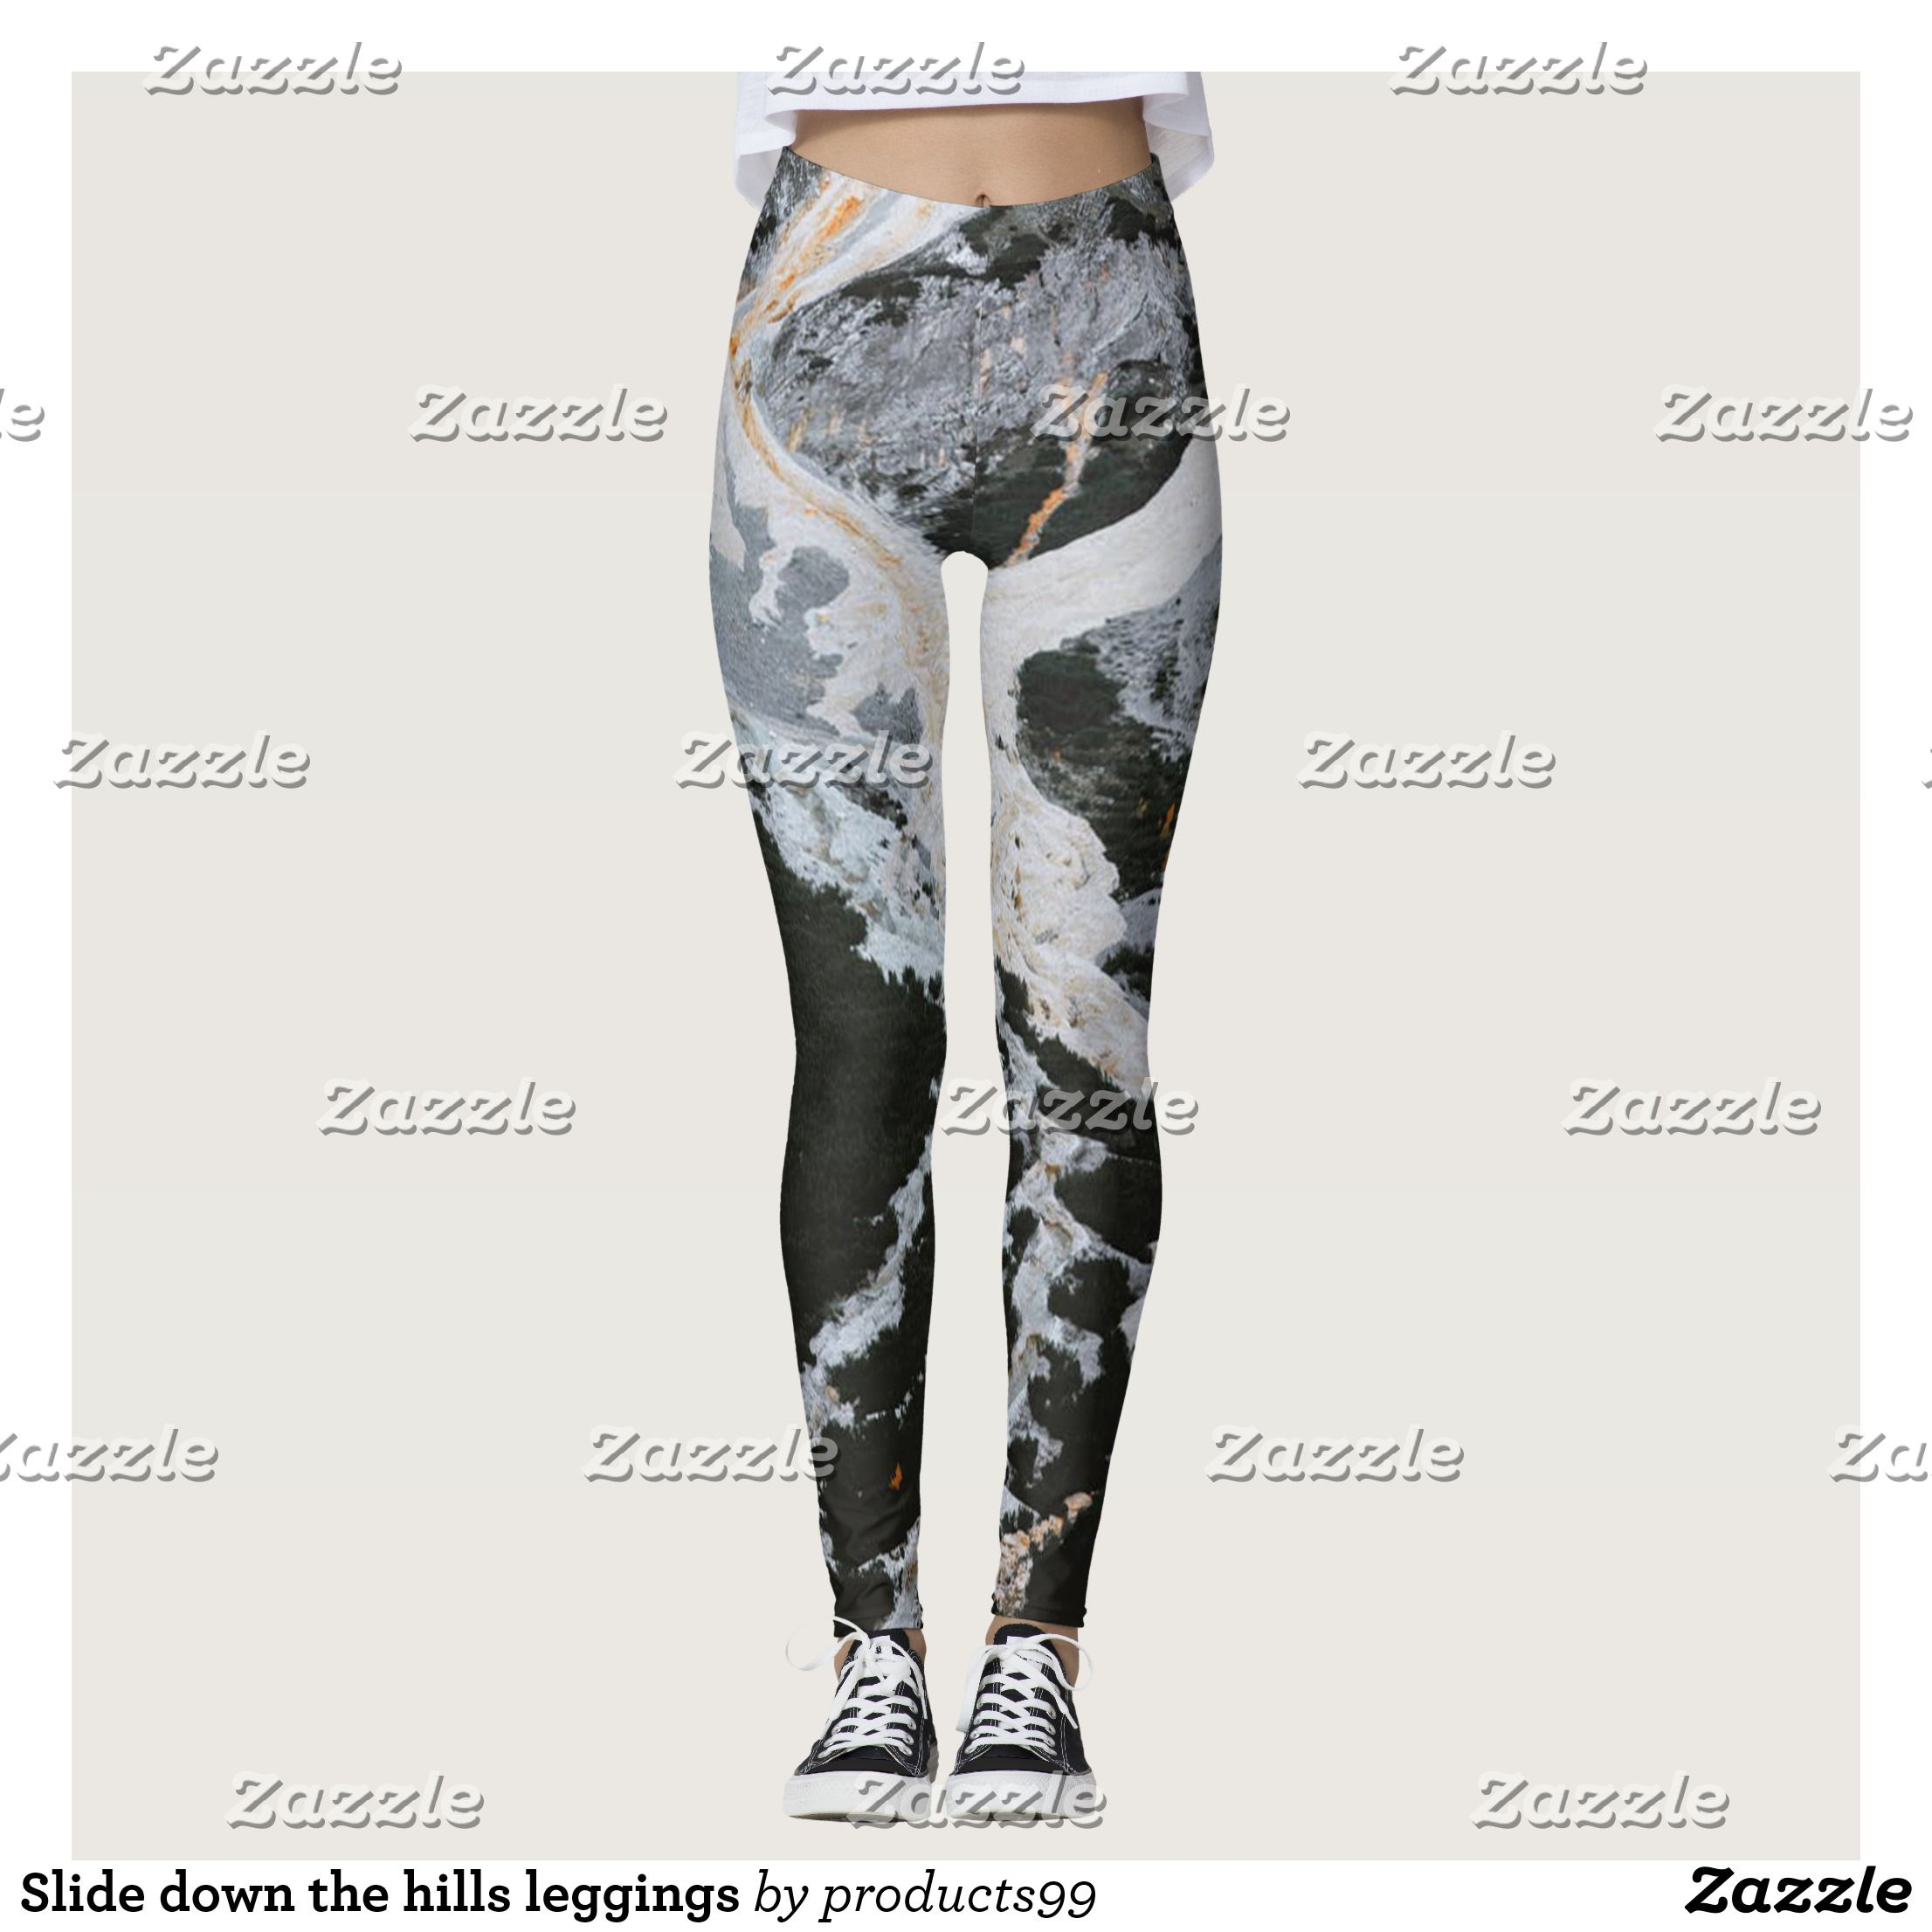 Slide Down The Hills Leggings Beautiful Yoga Pants Exercise Leggings And Running Tights Health And Training In Modern Leggings Fashion Outfits Clothes